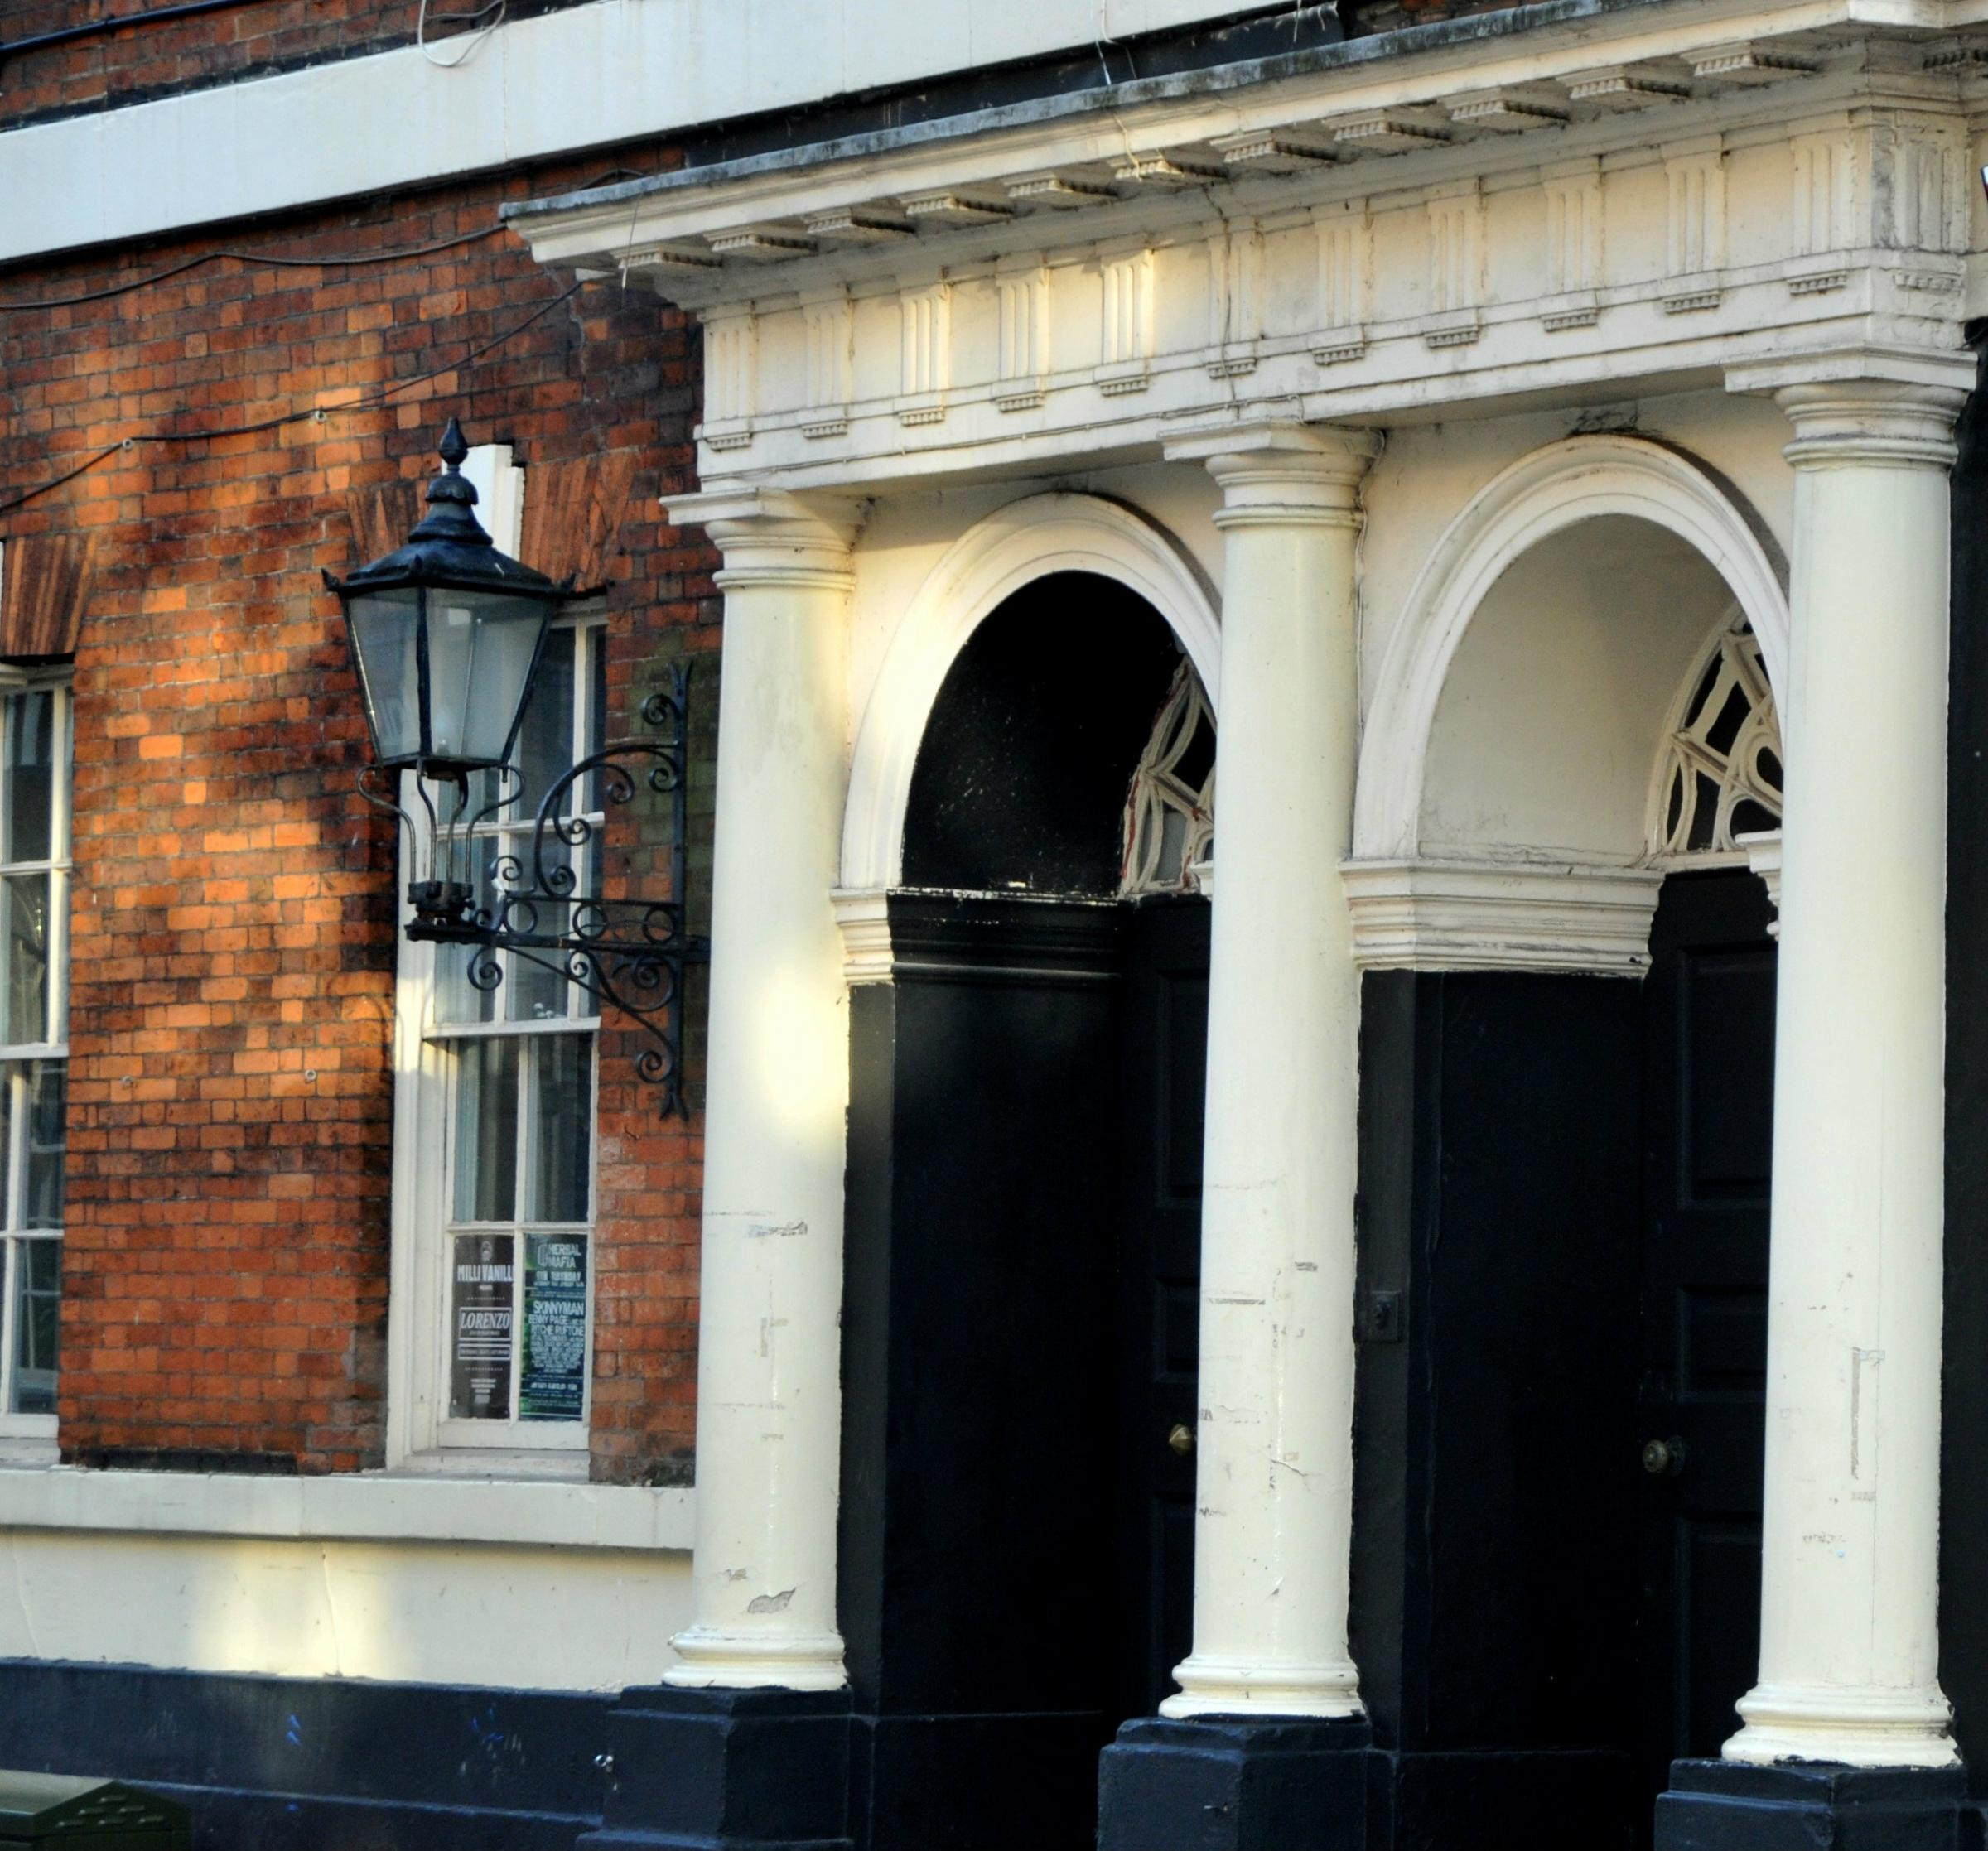 LICENCE BID: The entrance to Upstairs and Mansion on Micklegate, York